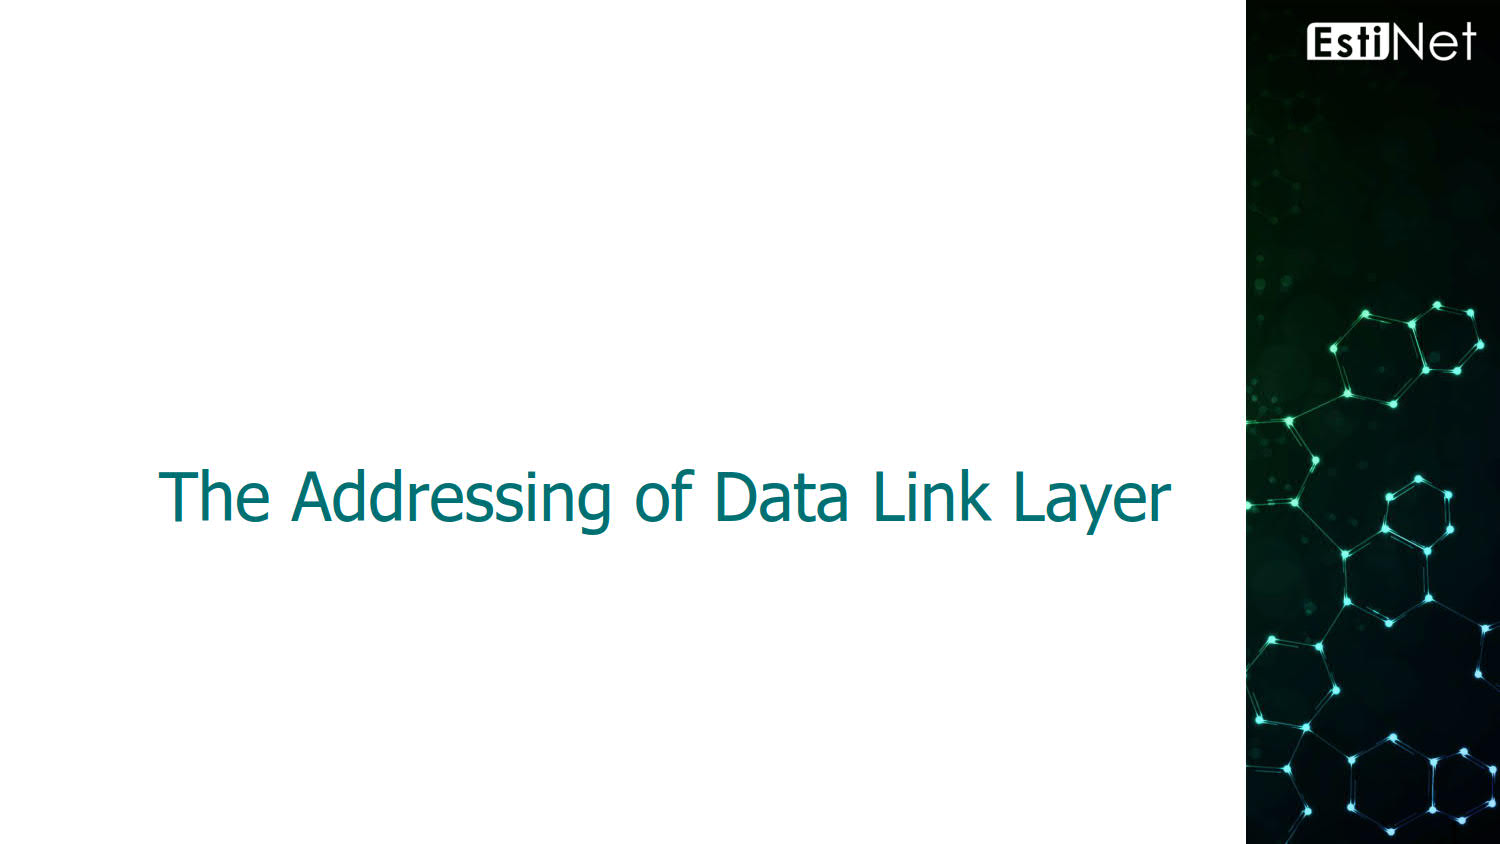 The Addressing of Data Link Layer_01